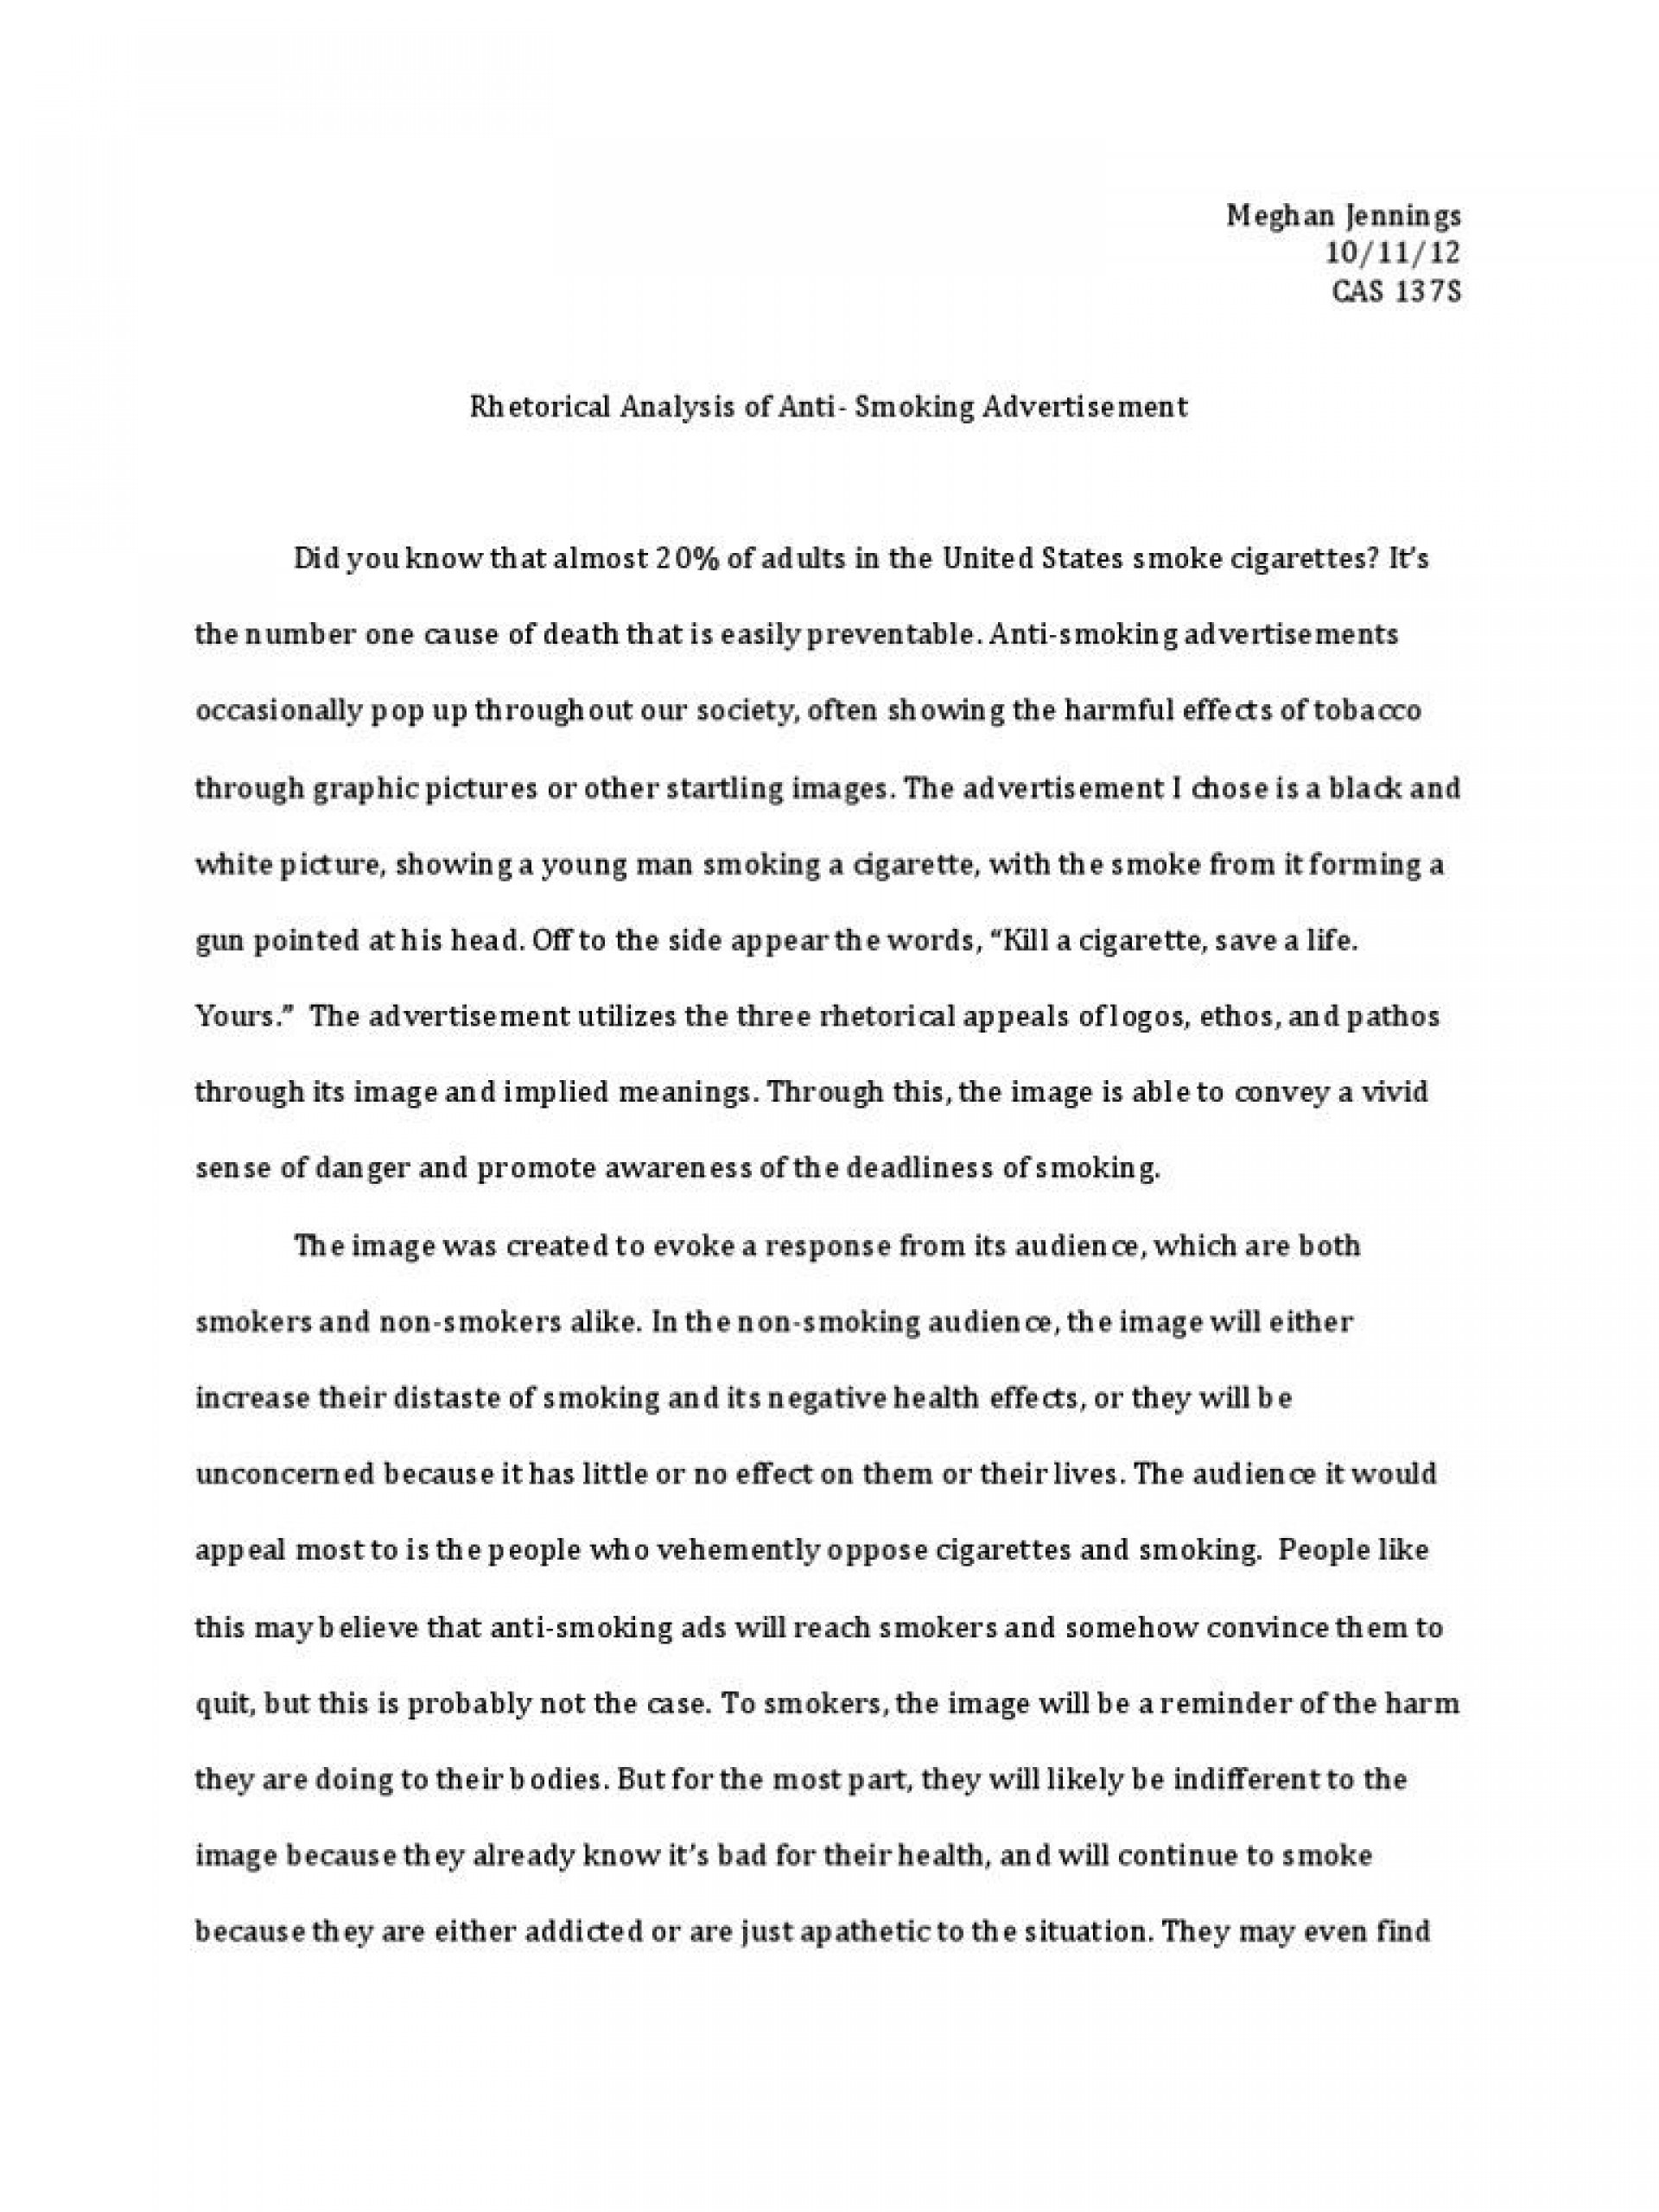 006 Rhetorical Essays Visual Analysis Essay Example Direction Evaluation Also Ethical Issue Of Striking Topics Strategies Examples College Question 1920